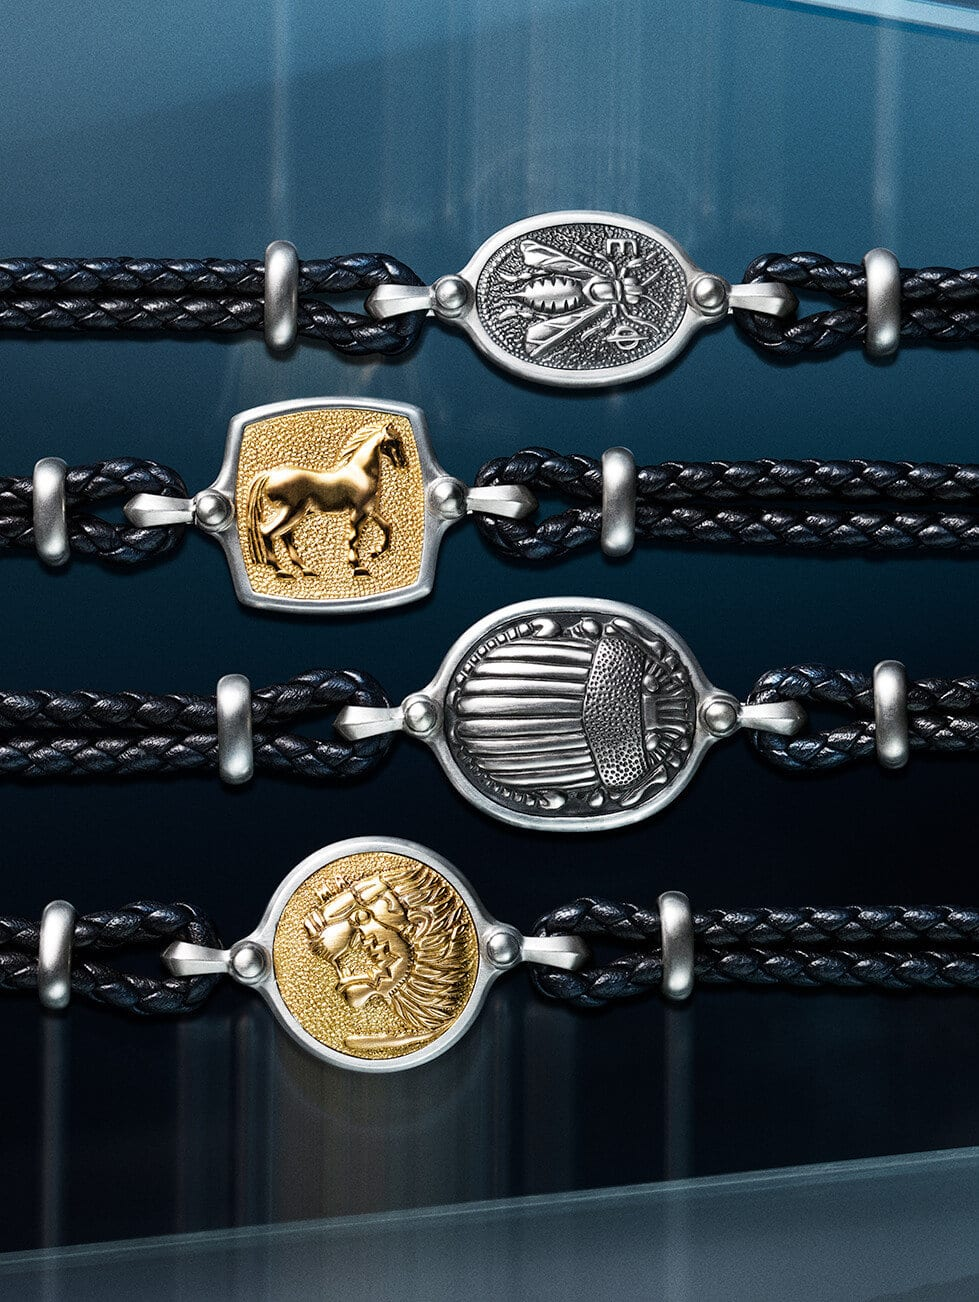 A vertical stack of David Yurman men's Petrvs® bracelets, in black leather with sterling silver and 18K gold, against a dark blue background with streaks of yellow and light blue.